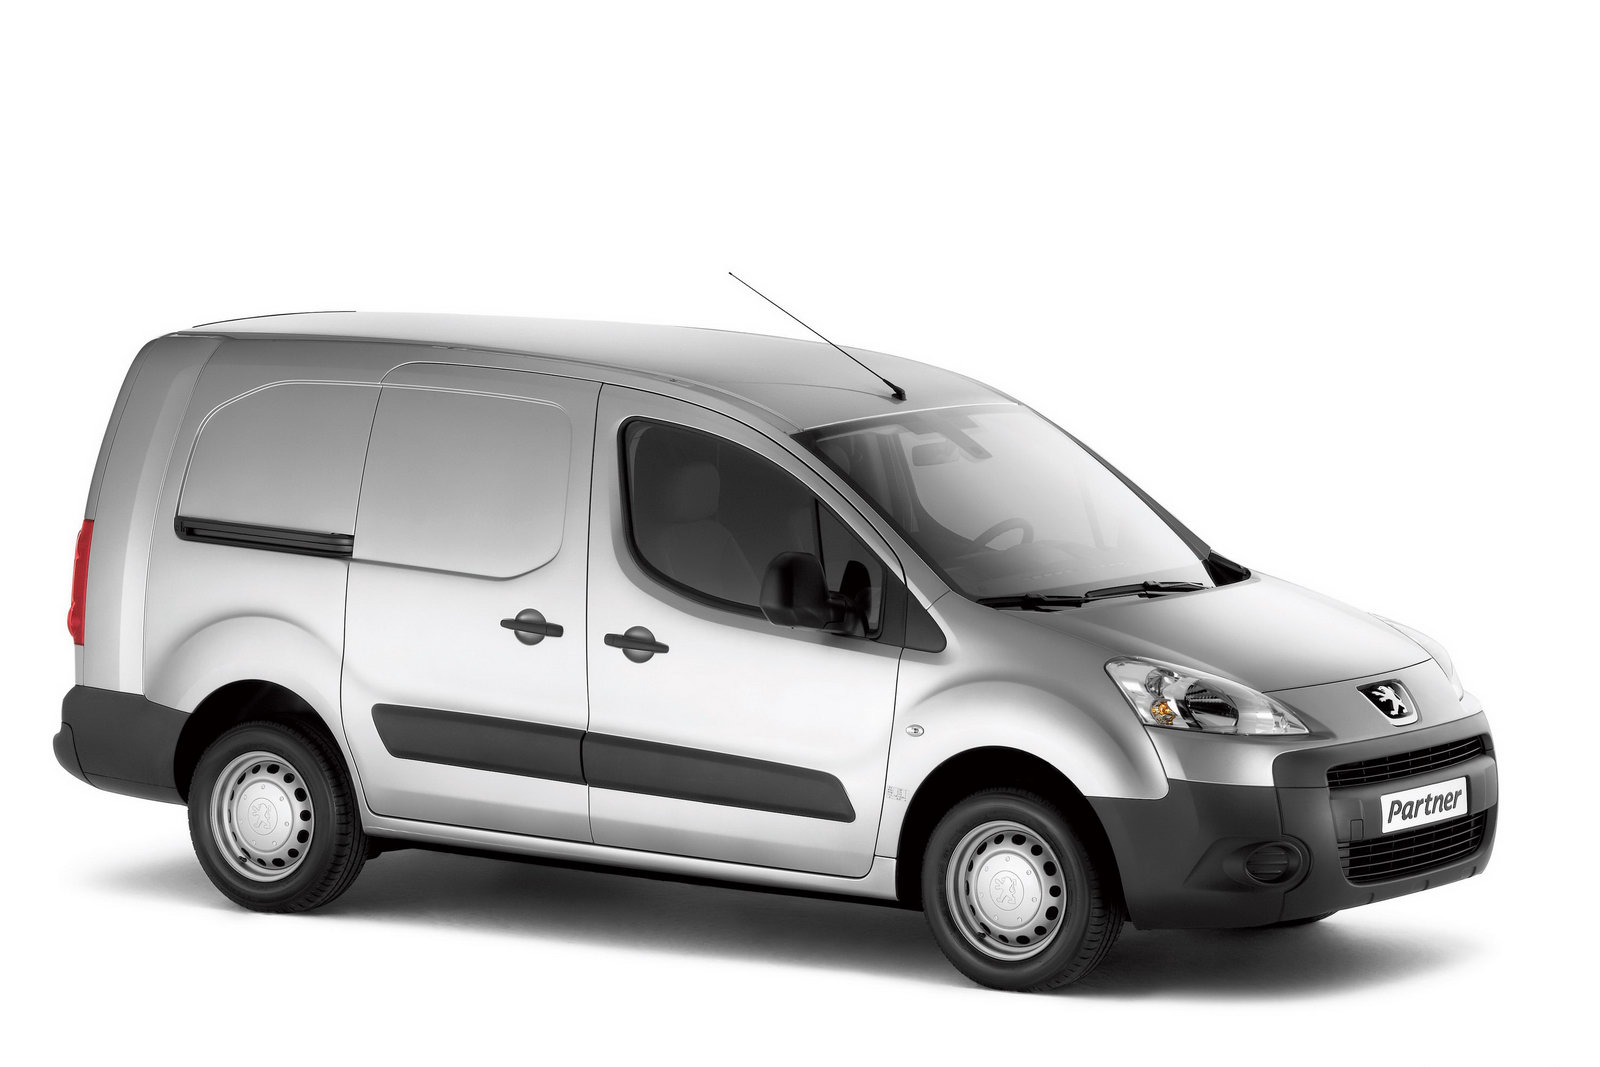 Peugeot's Partner crew Van is now available in the UK with a five seat bristol nz free image editor Wallpaper